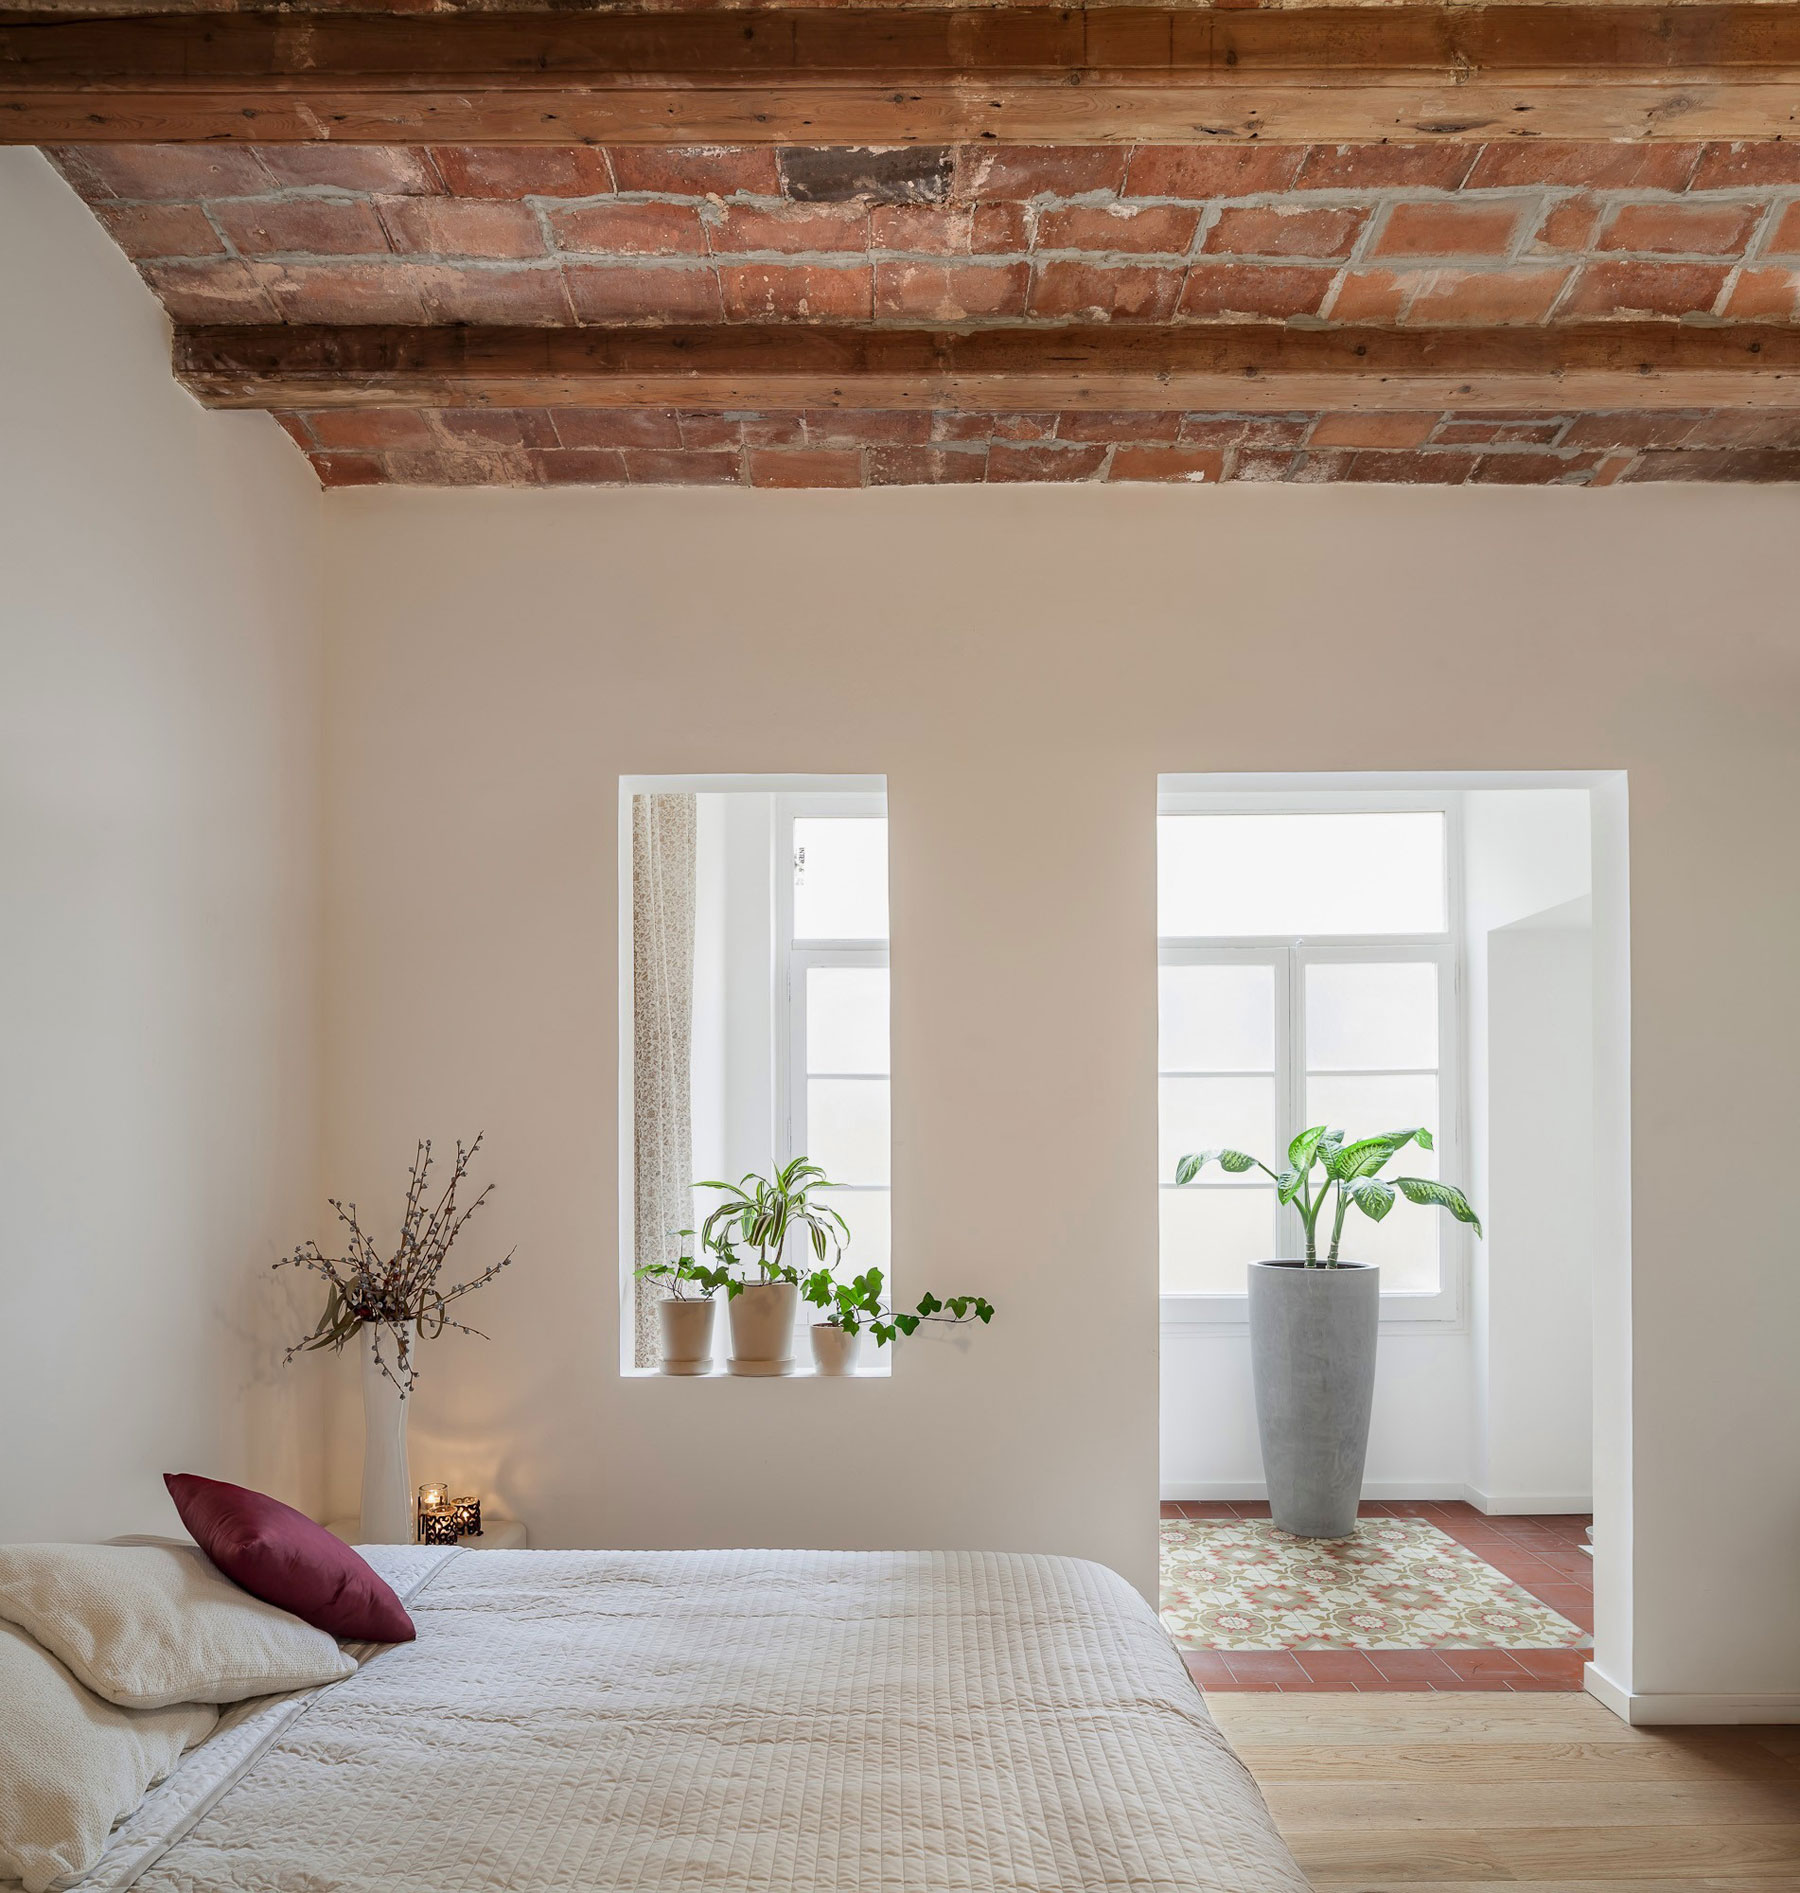 Renovation Apartment in Les Corts balcony